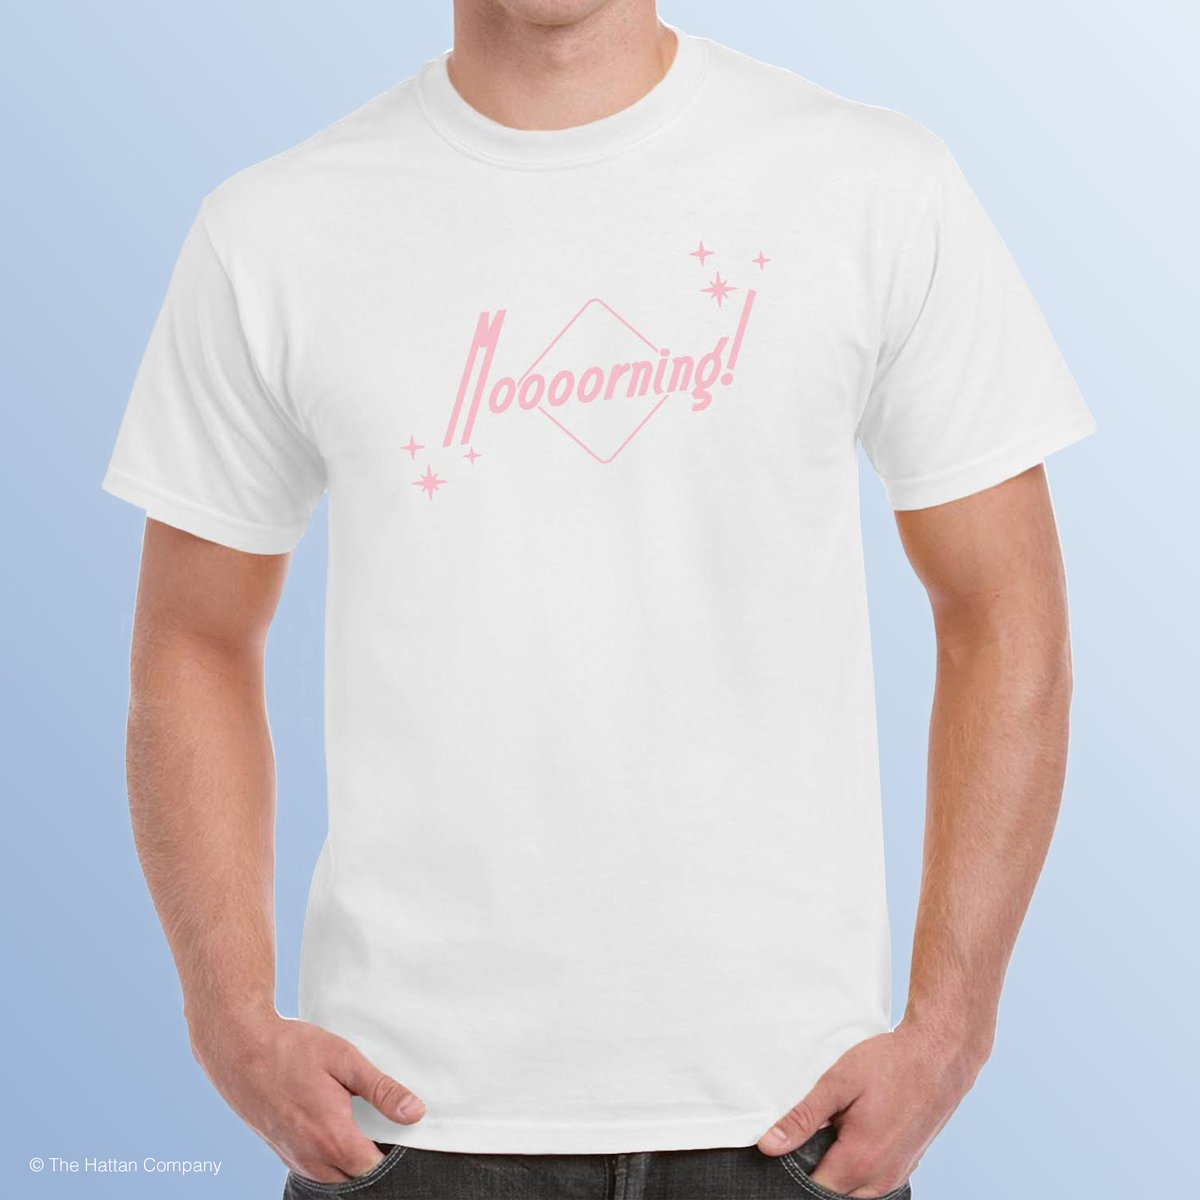 bd0b83a2 Get 20% off any 'Moooorning' T-Shirt today with code 'IMNOTALOSER'  http://adamhattan.com/shop pic.twitter.com/h1negb6gW8